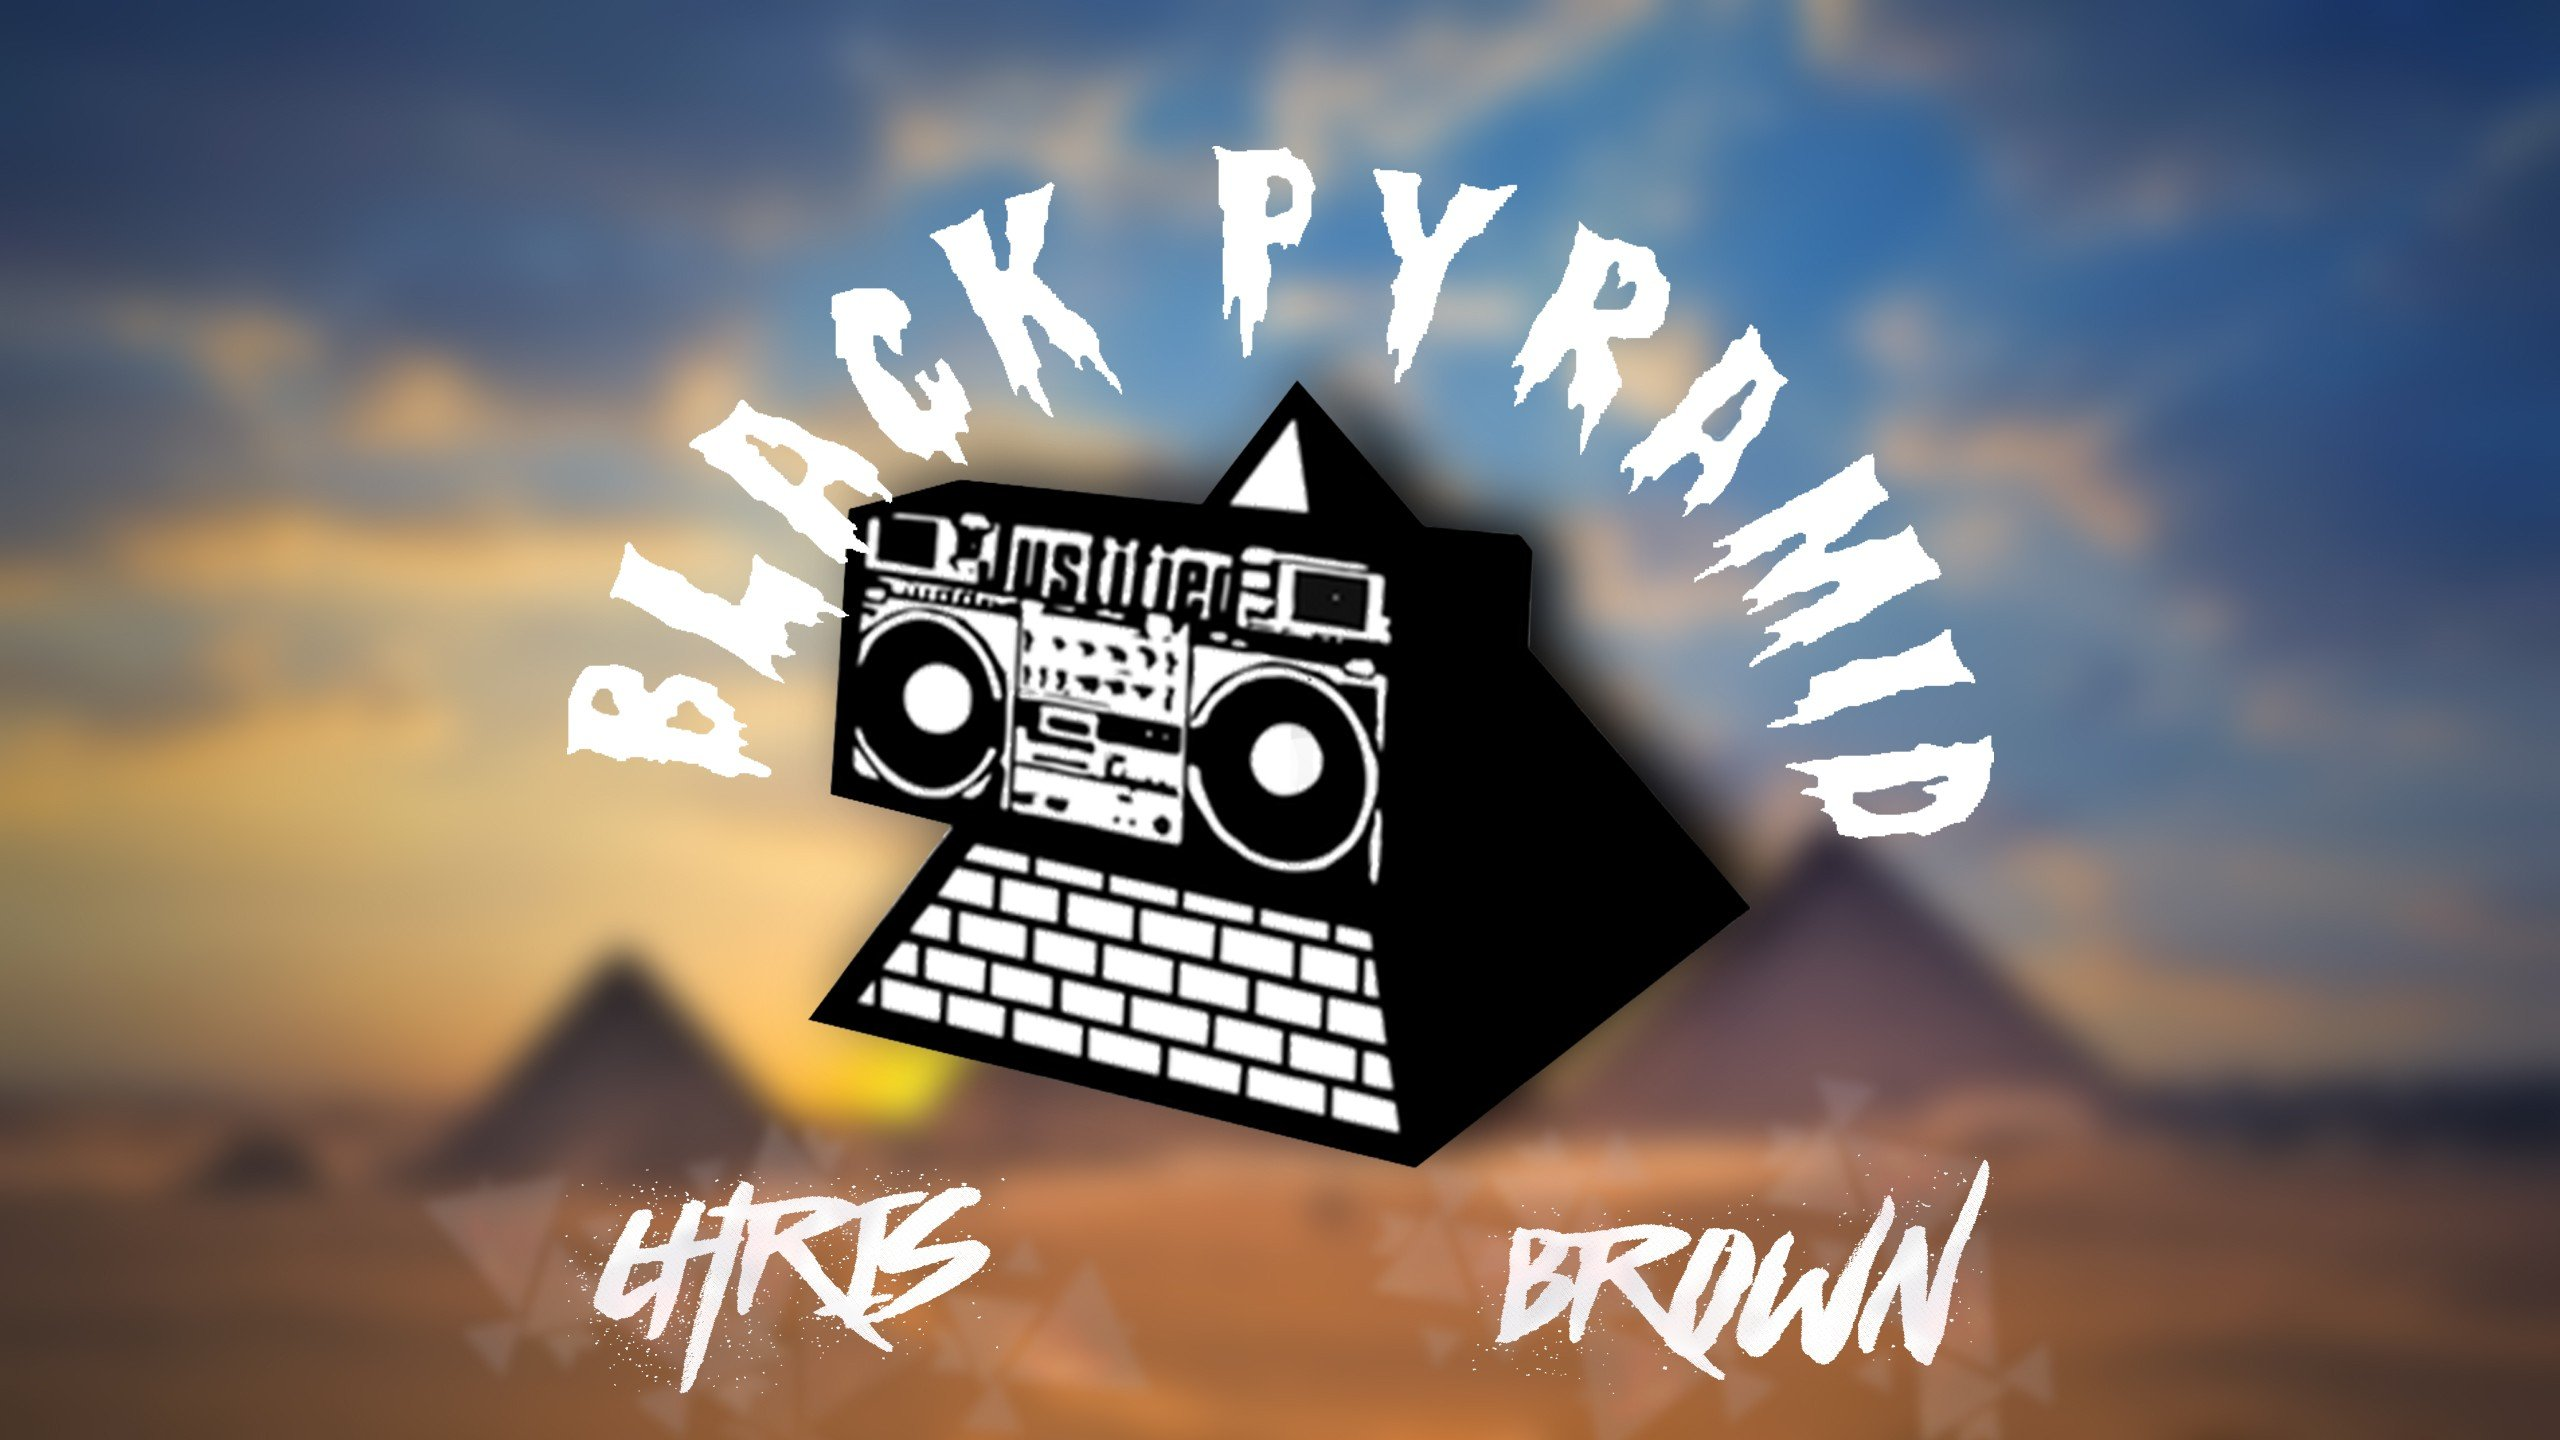 black pyramid Chris brown Breezy Wallpapers HD Desktop and 2560x1440